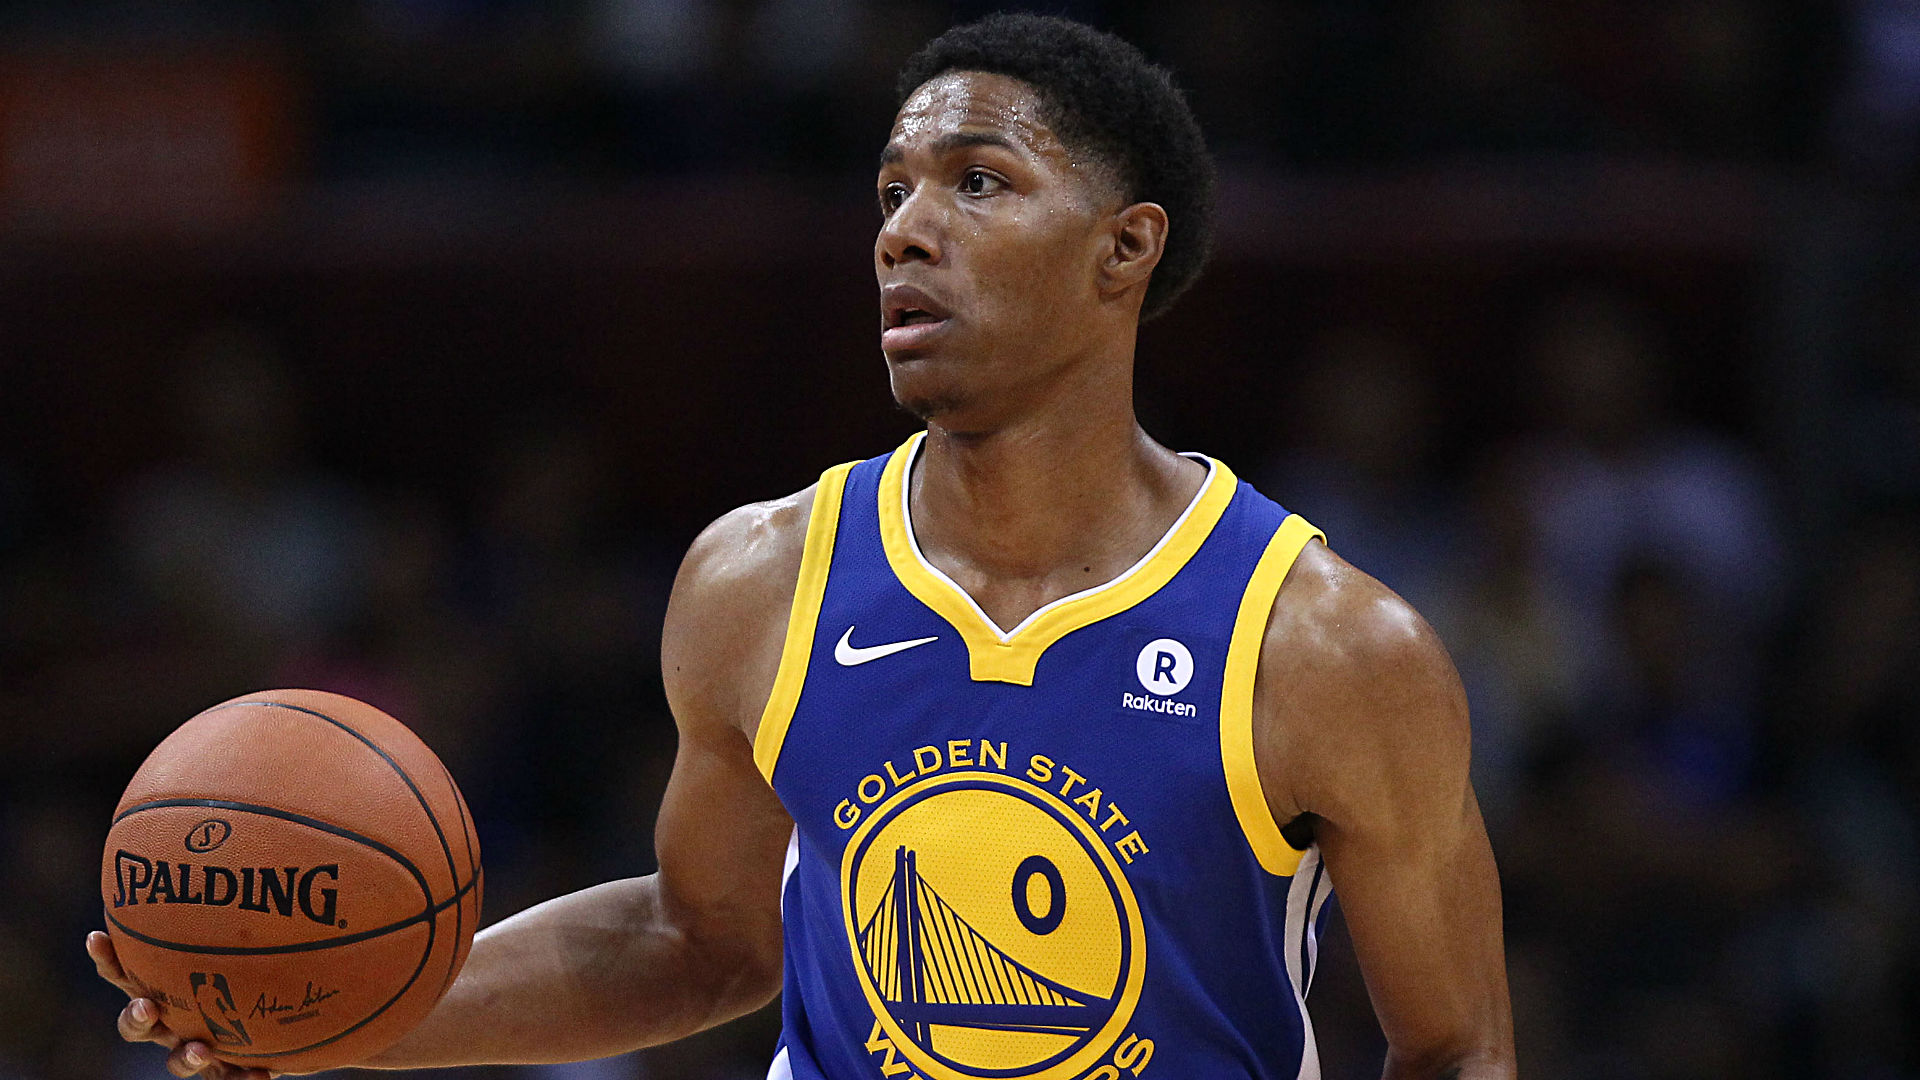 NBA free agency rumors: Patrick McCaw still negotiating with Warriors, 'in discussions' with multiple teams